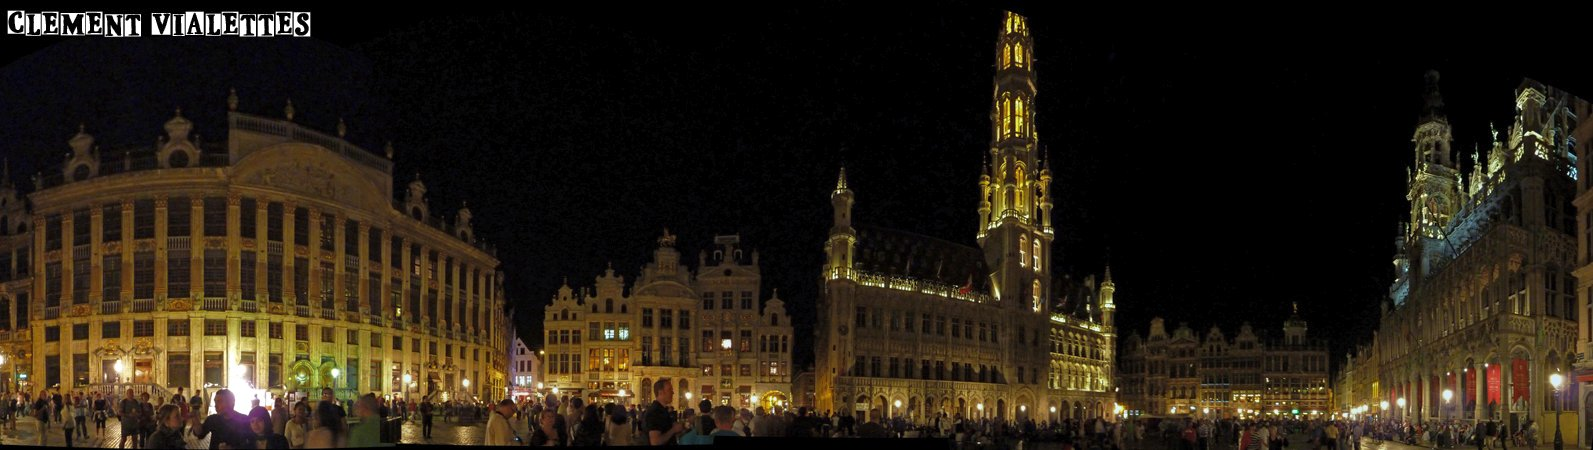 2011-05-bruxelles-grand_place_de_nuit_panoramique_01.jpg